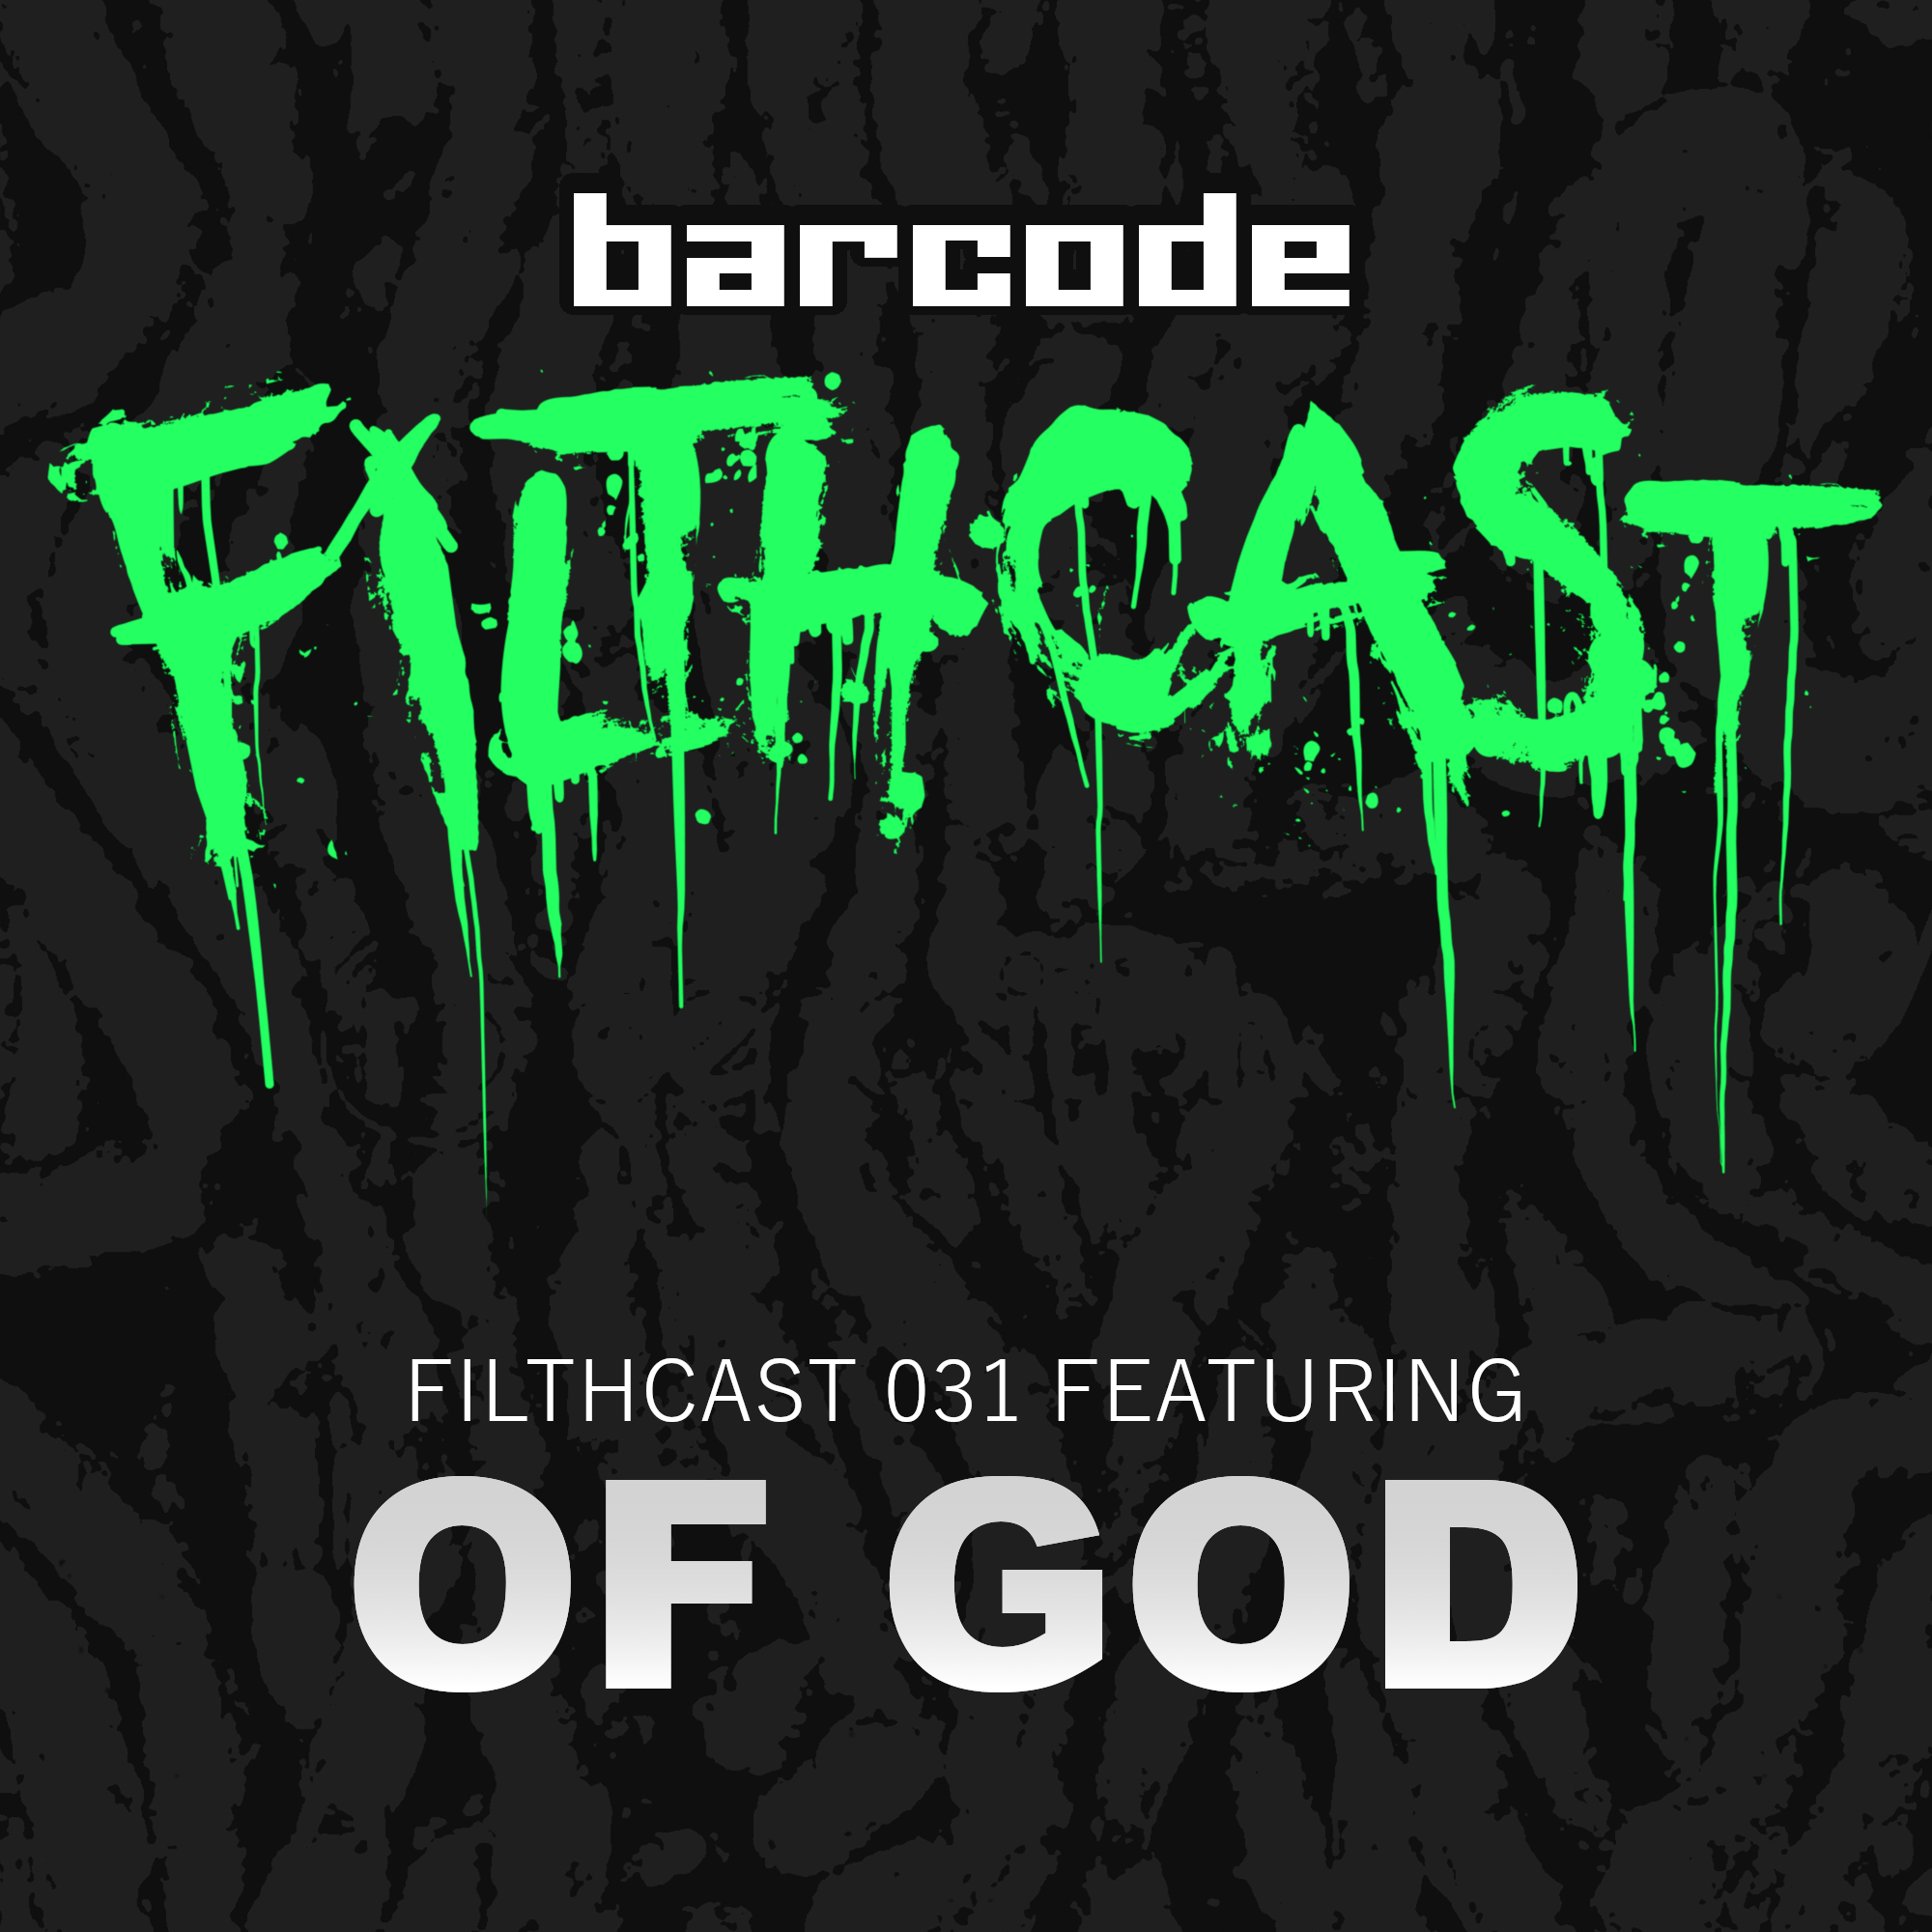 Of God are among Australia's finest. I wanted to do something different, so we recorded & streamed this Filthcast live, gave ourselves a few days to recover from the hangover, and here it is in mp3 format.